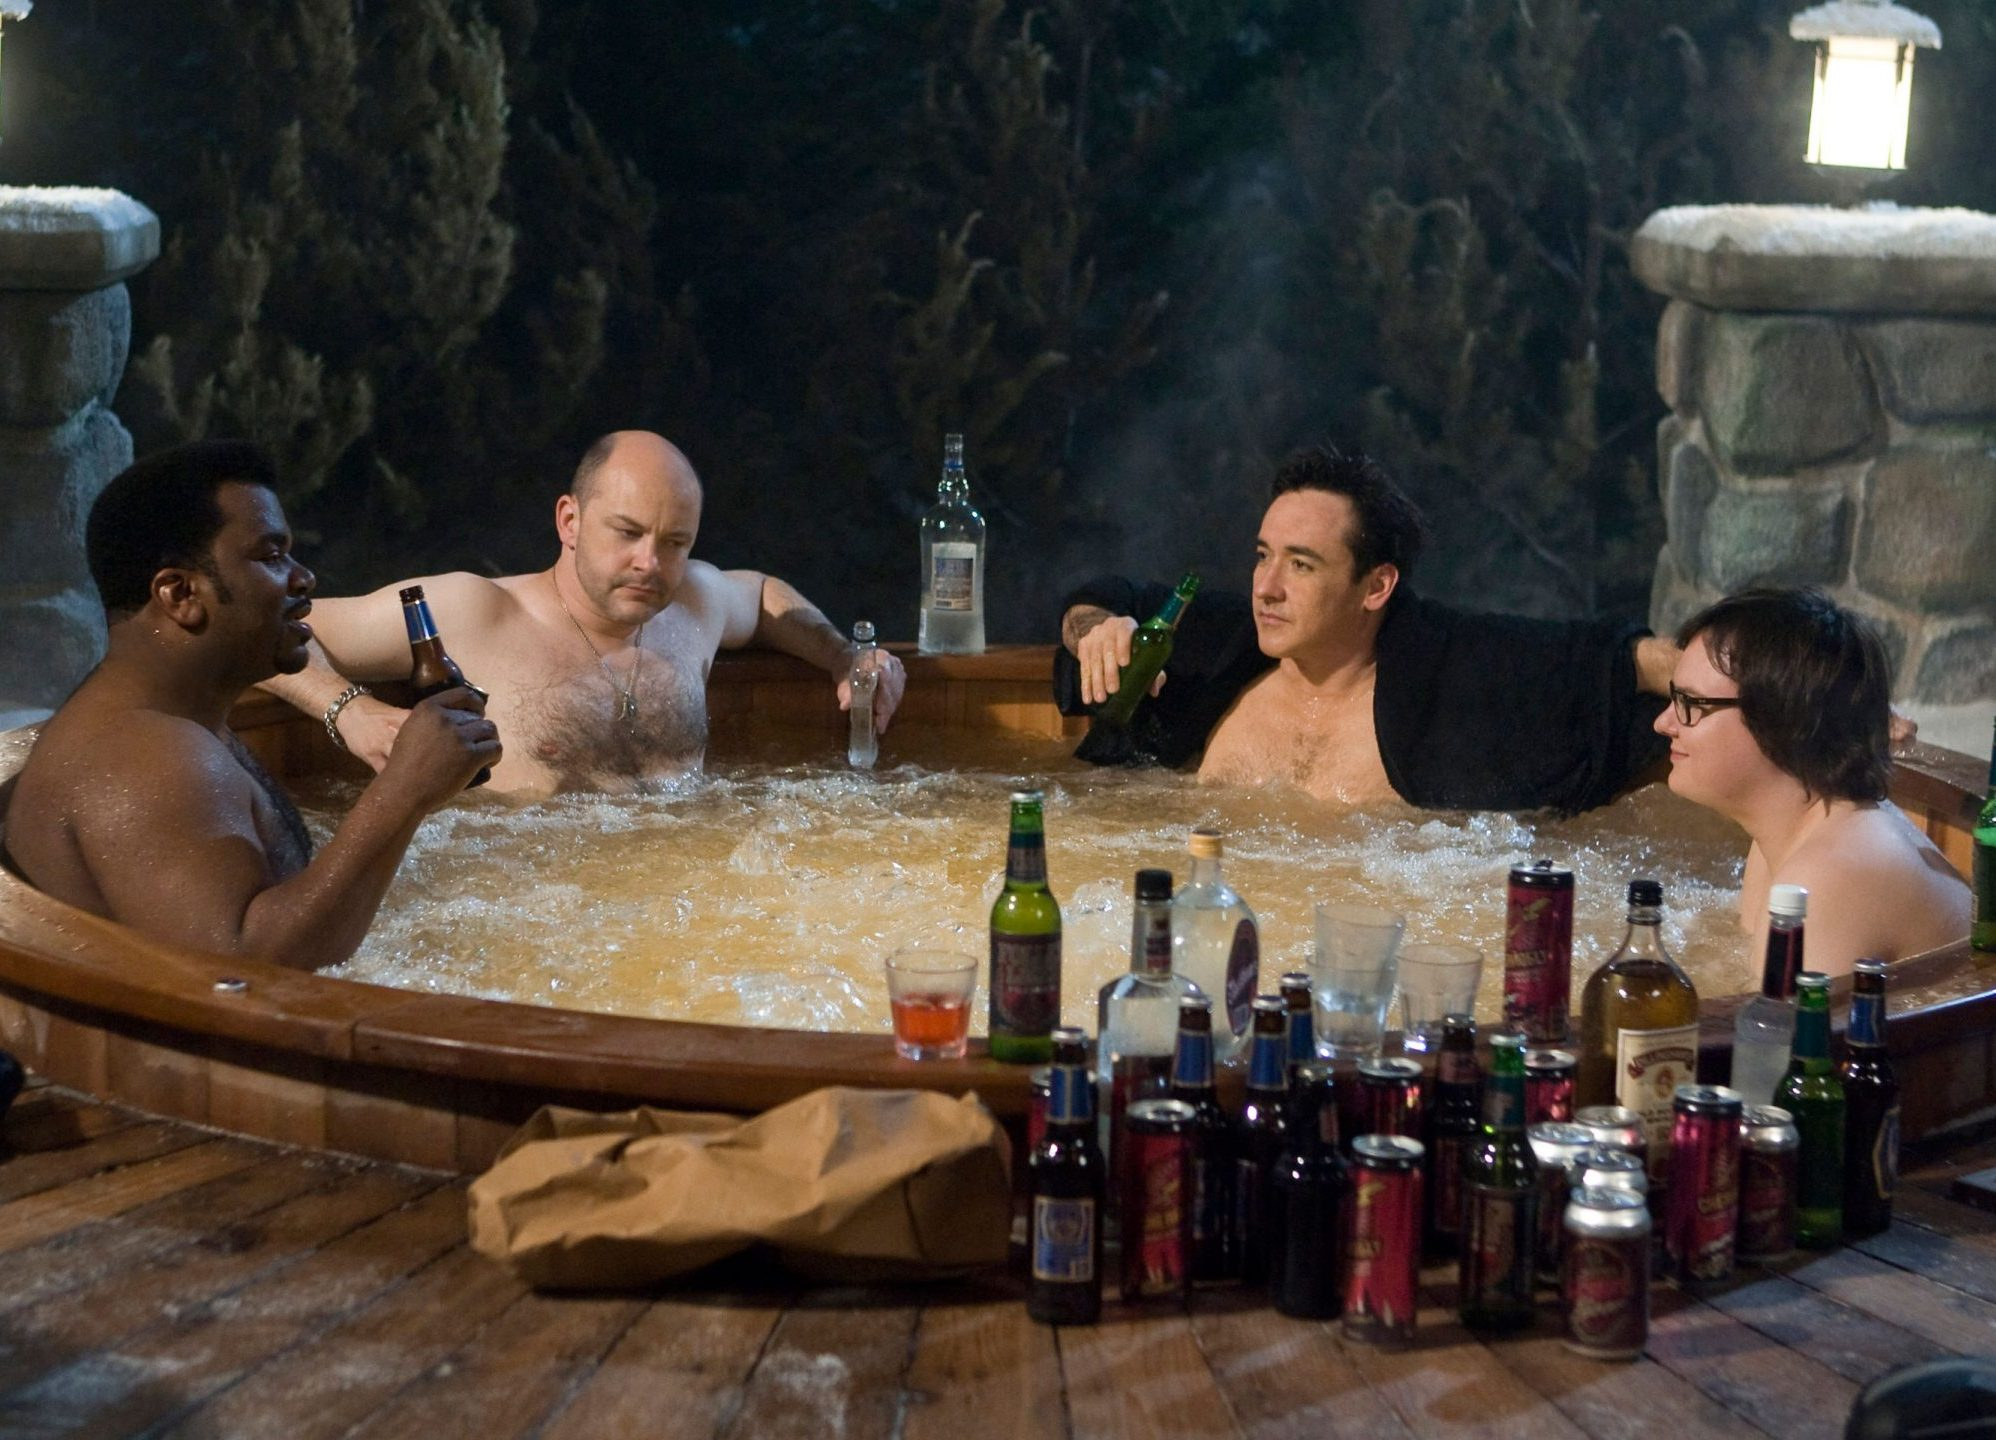 hottub wide 6394bf245f6c3d2d25bb902e17aeb30f46c7f633 scaled e1623848424148 20 Things You Never Knew About Better Off Dead